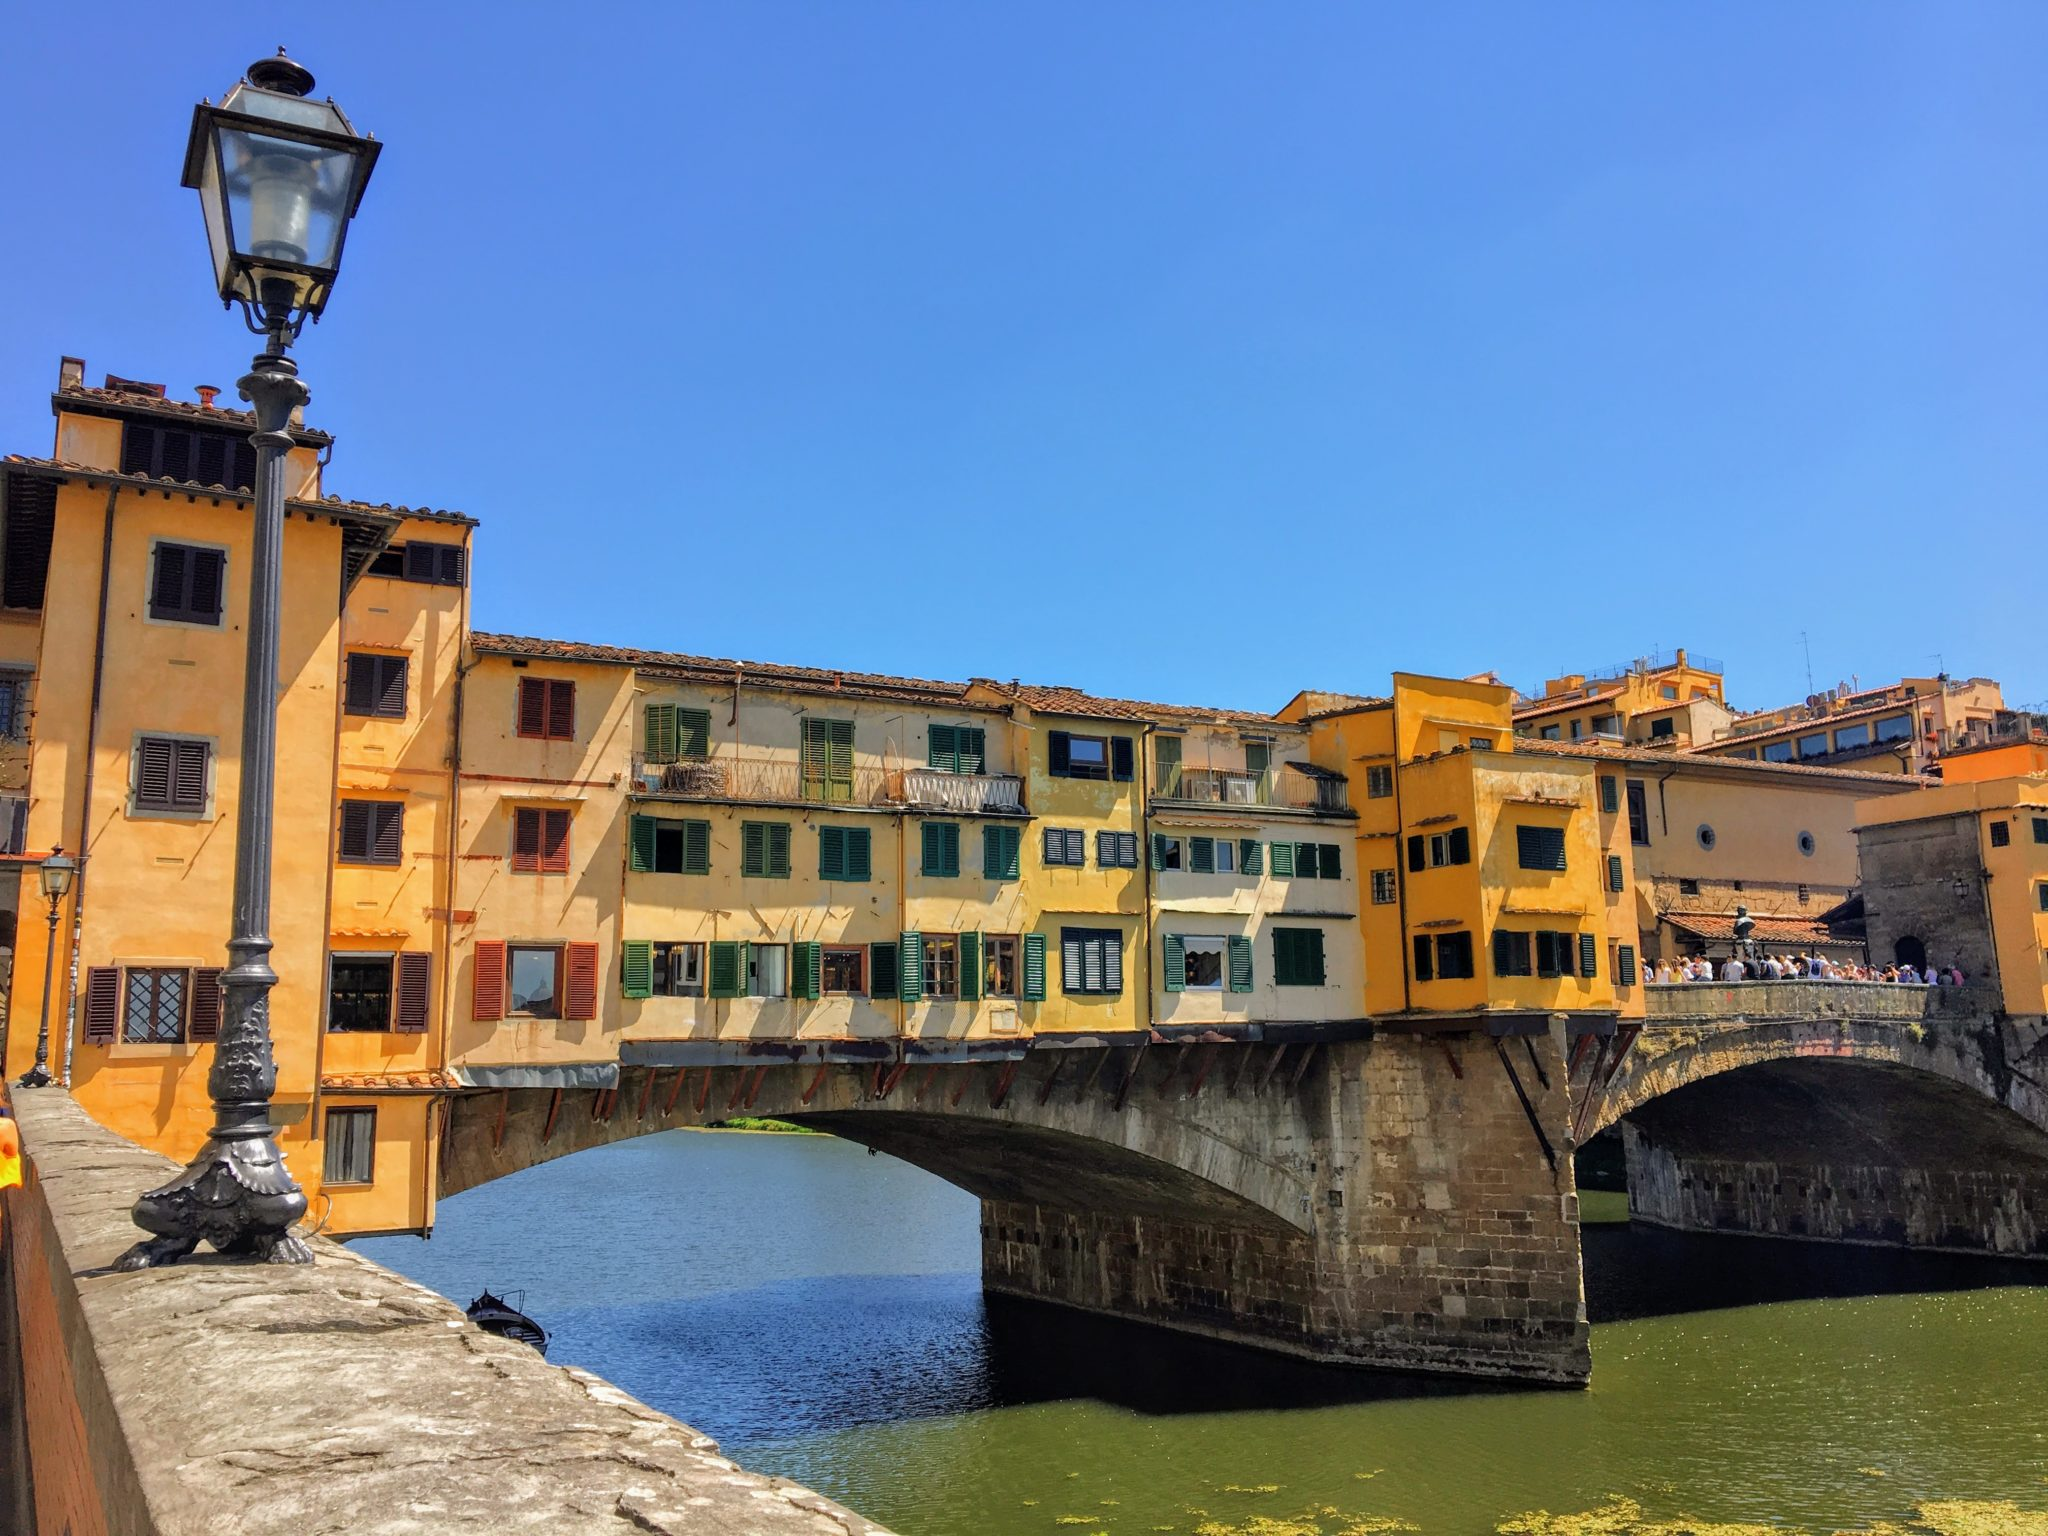 The Ponte Vecchio bridge that we discovered during our Florence Fiasco